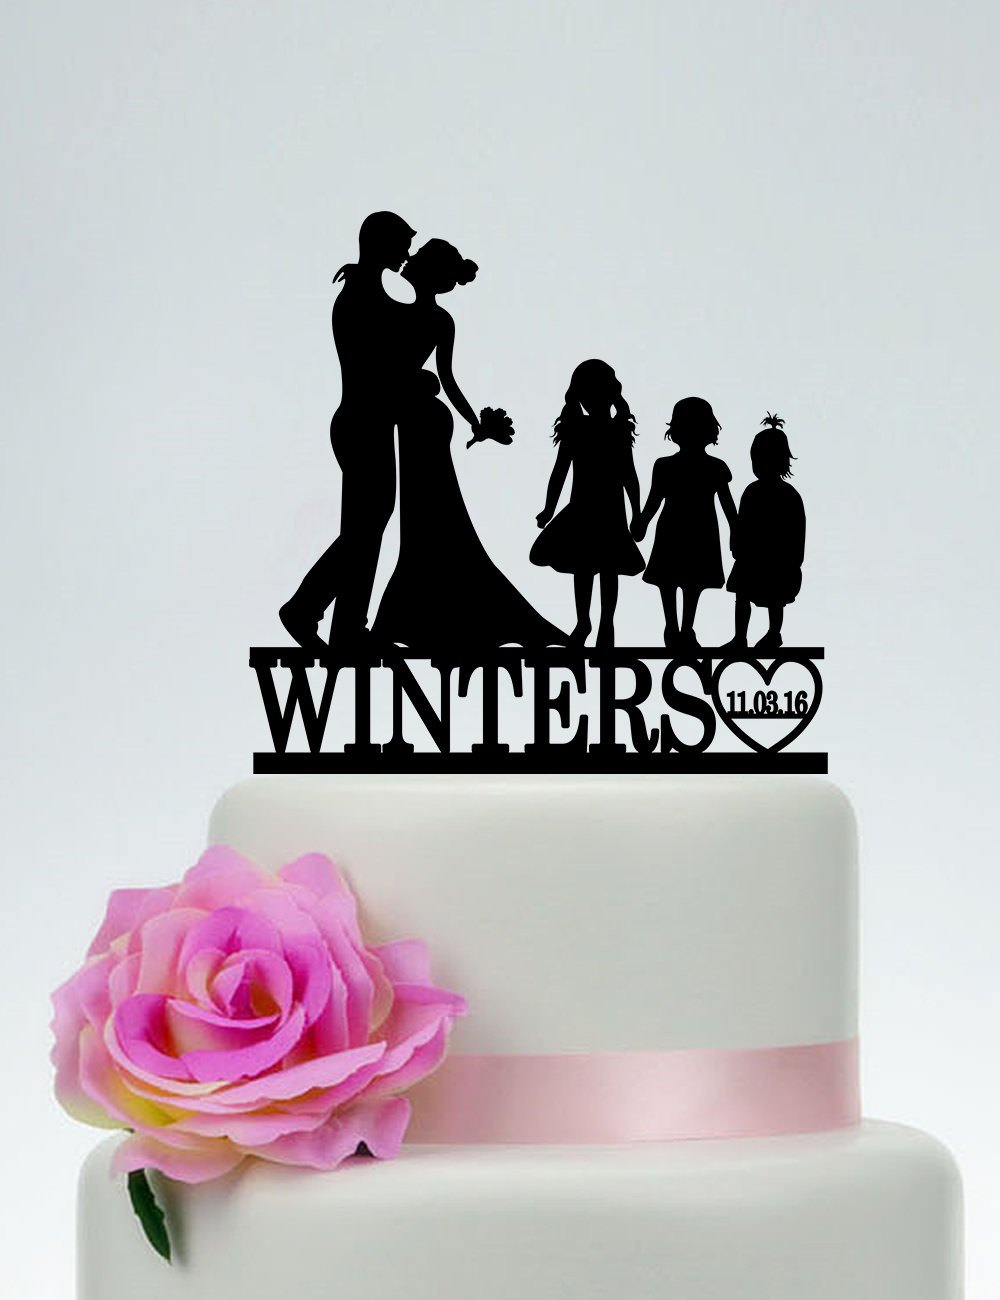 Family Custom Wedding Topper Bride And Groom With Three Little Girls Couple With Child Wedding Cake Toppers Letters Funny Wedding Anniversary Cake Topper Party Event Decorations Wedding Gift